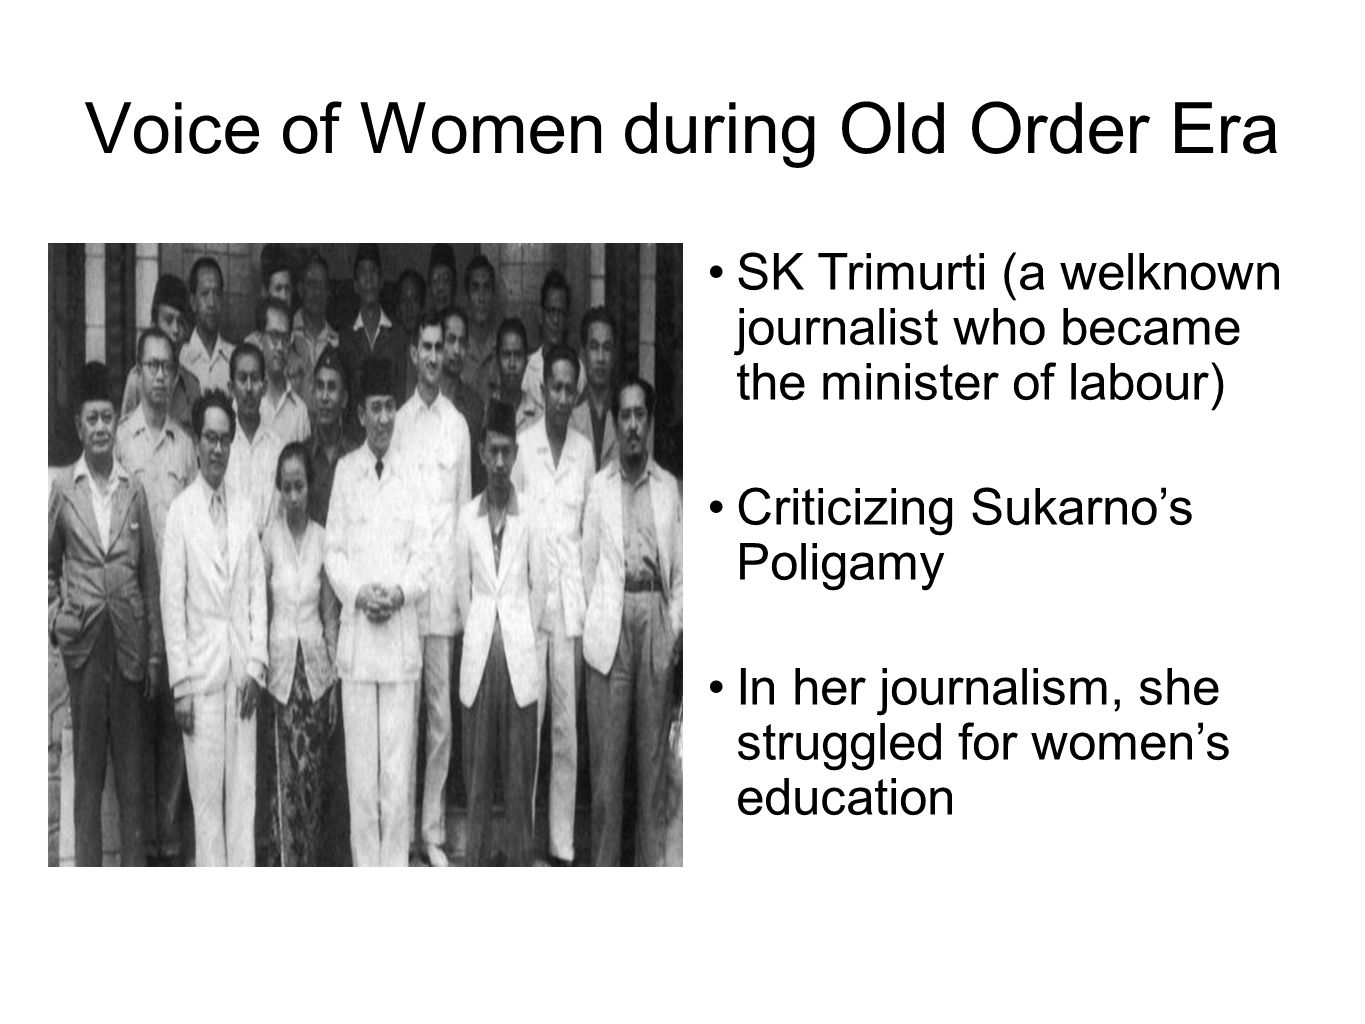 Voice of Women during Old Order Era SK Trimurti (a welknown journalist who became the minister of labour) Criticizing Sukarno's Poligamy In her journalism, she struggled for women's education